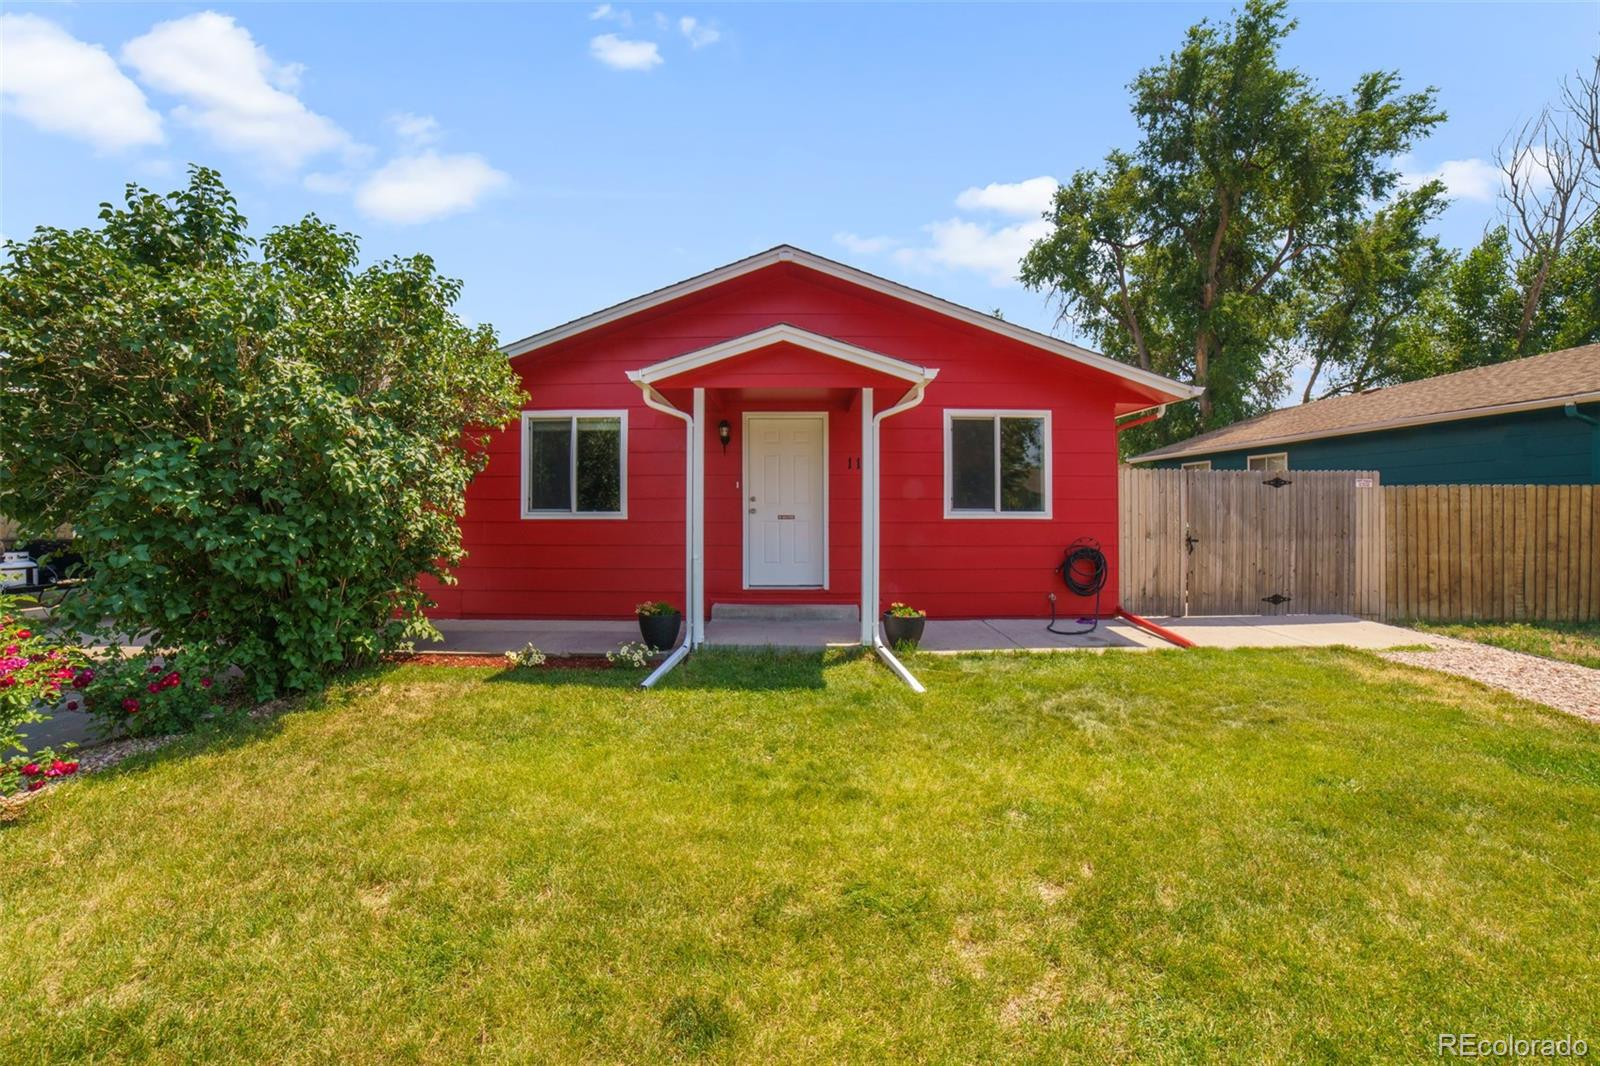 MLS# 7364059 - 1 - 1114 Pacific Way, Fort Lupton, CO 80621